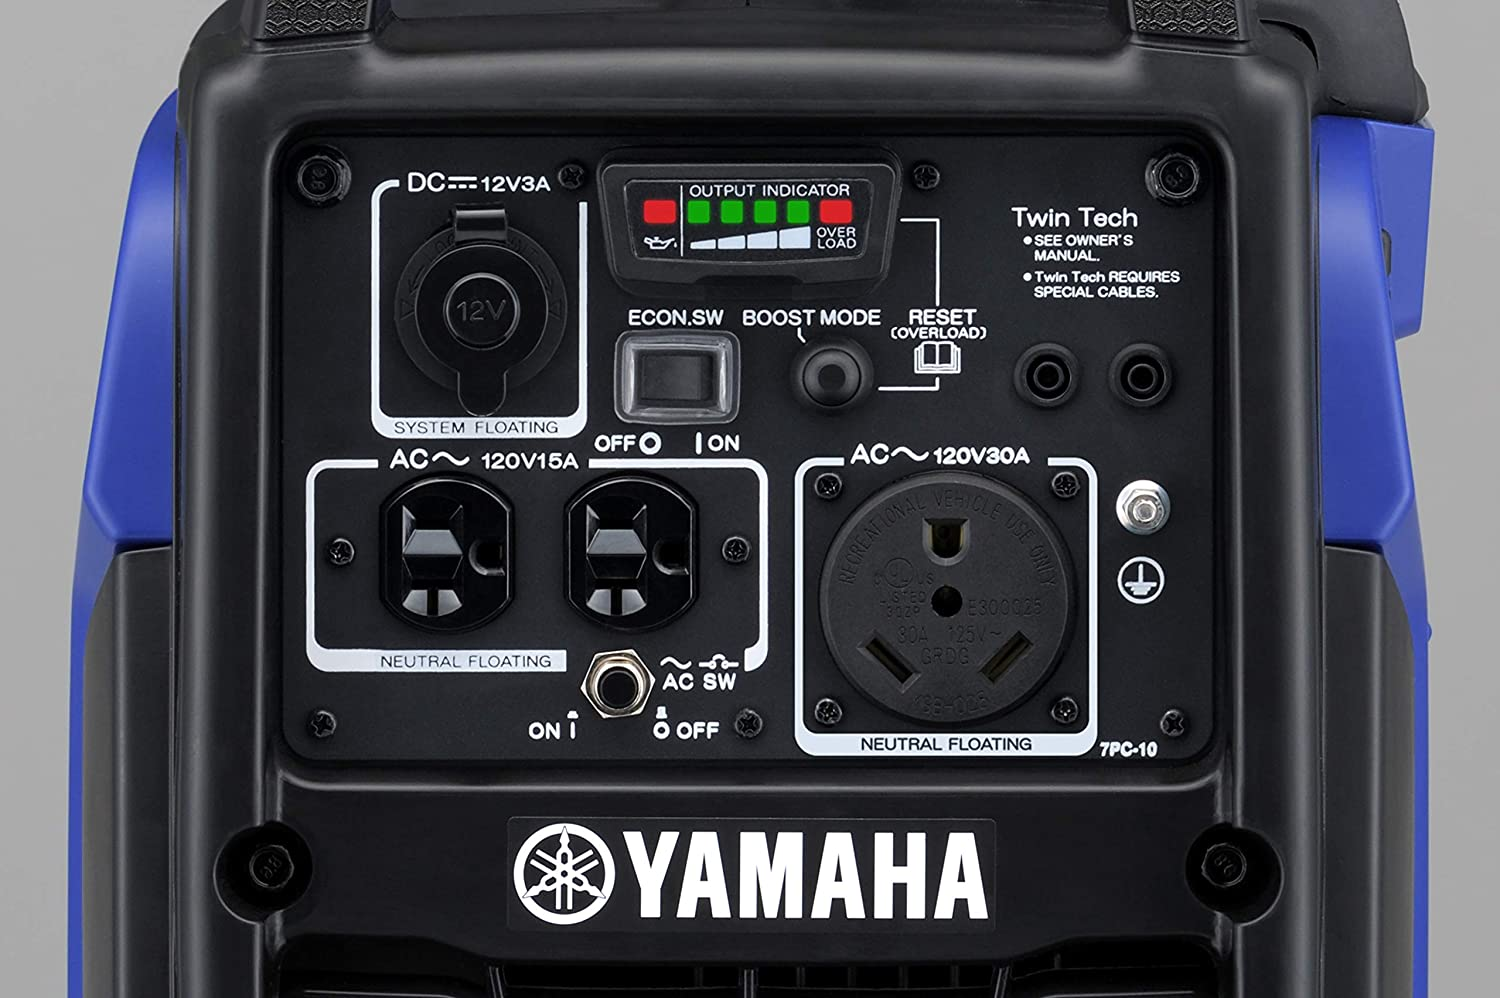 Outlets offered by Yamaha EF2200iS